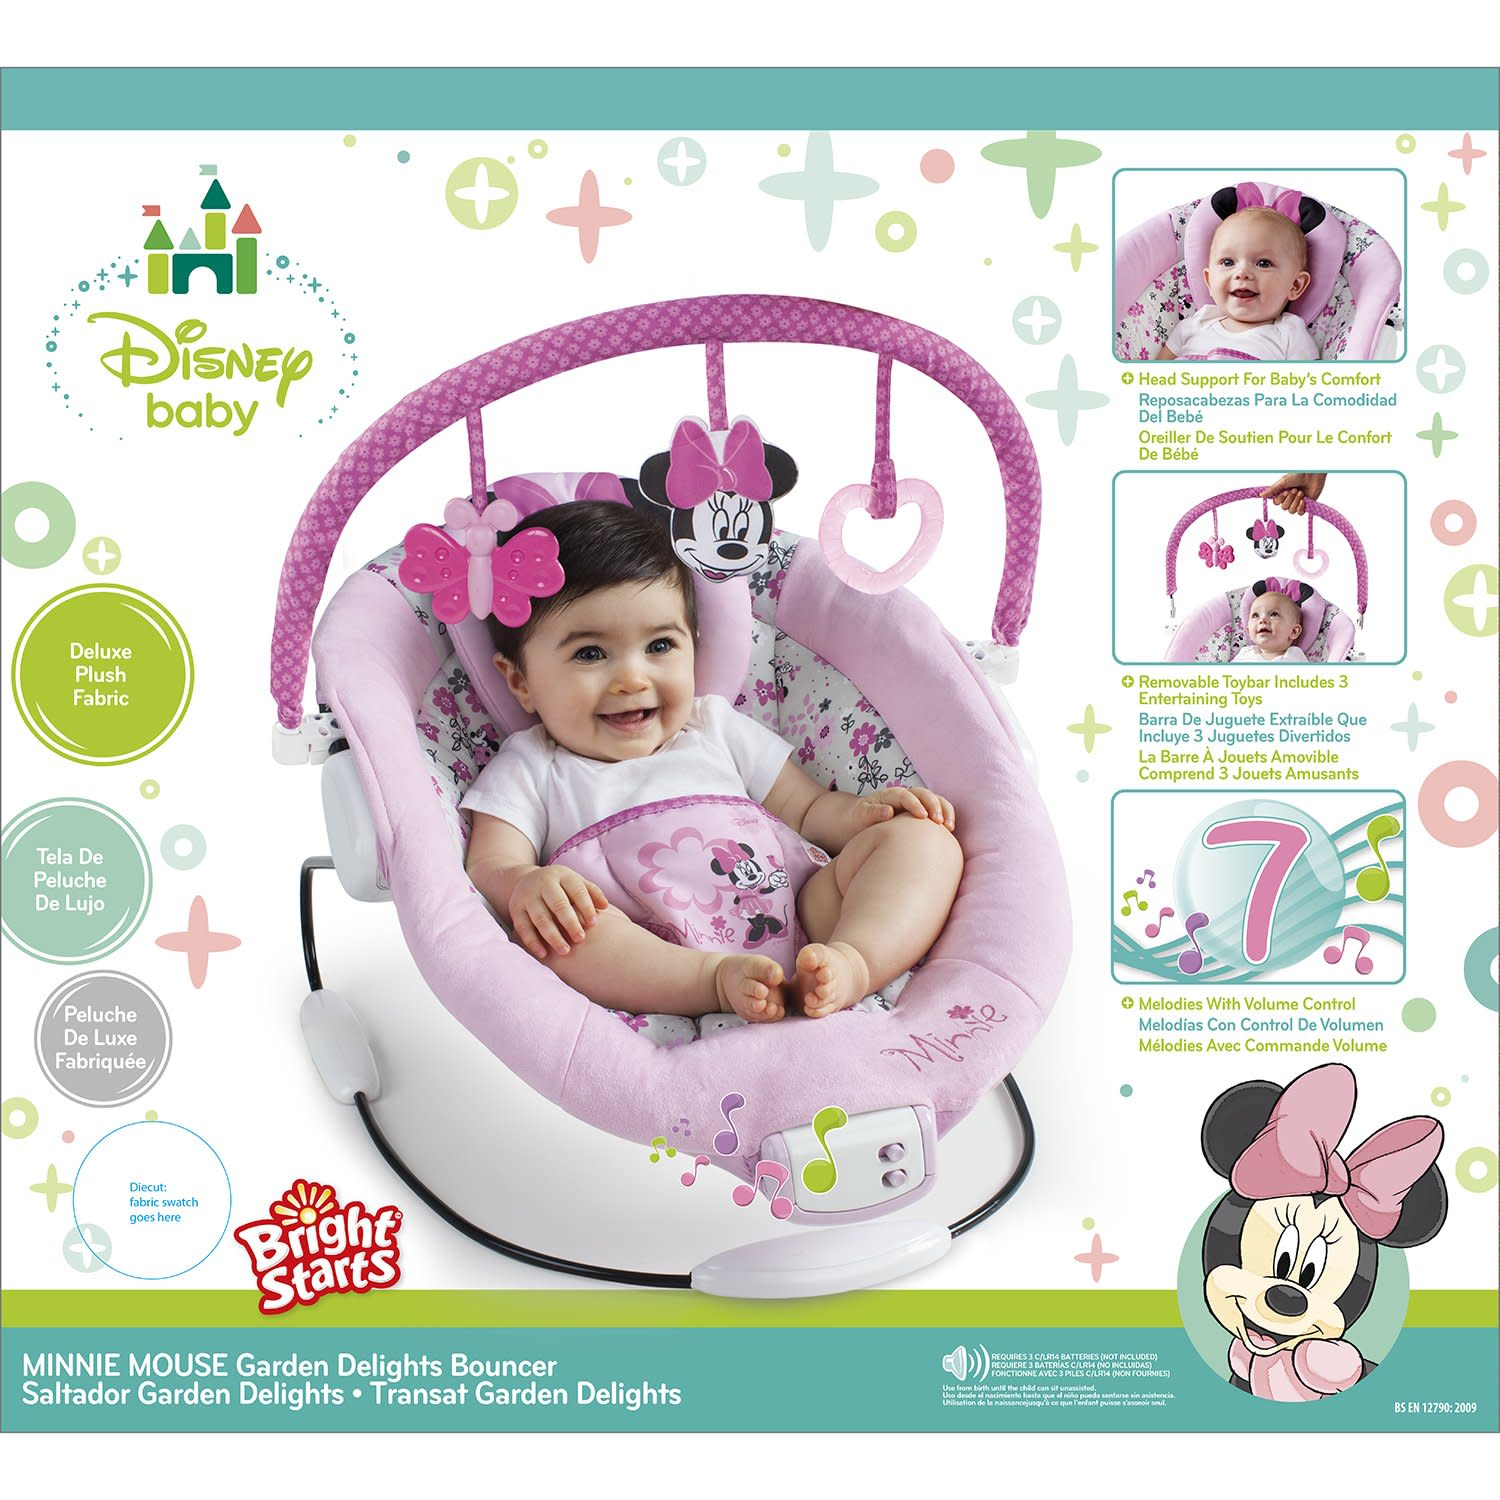 Baby girl vibrating chair - Product Details